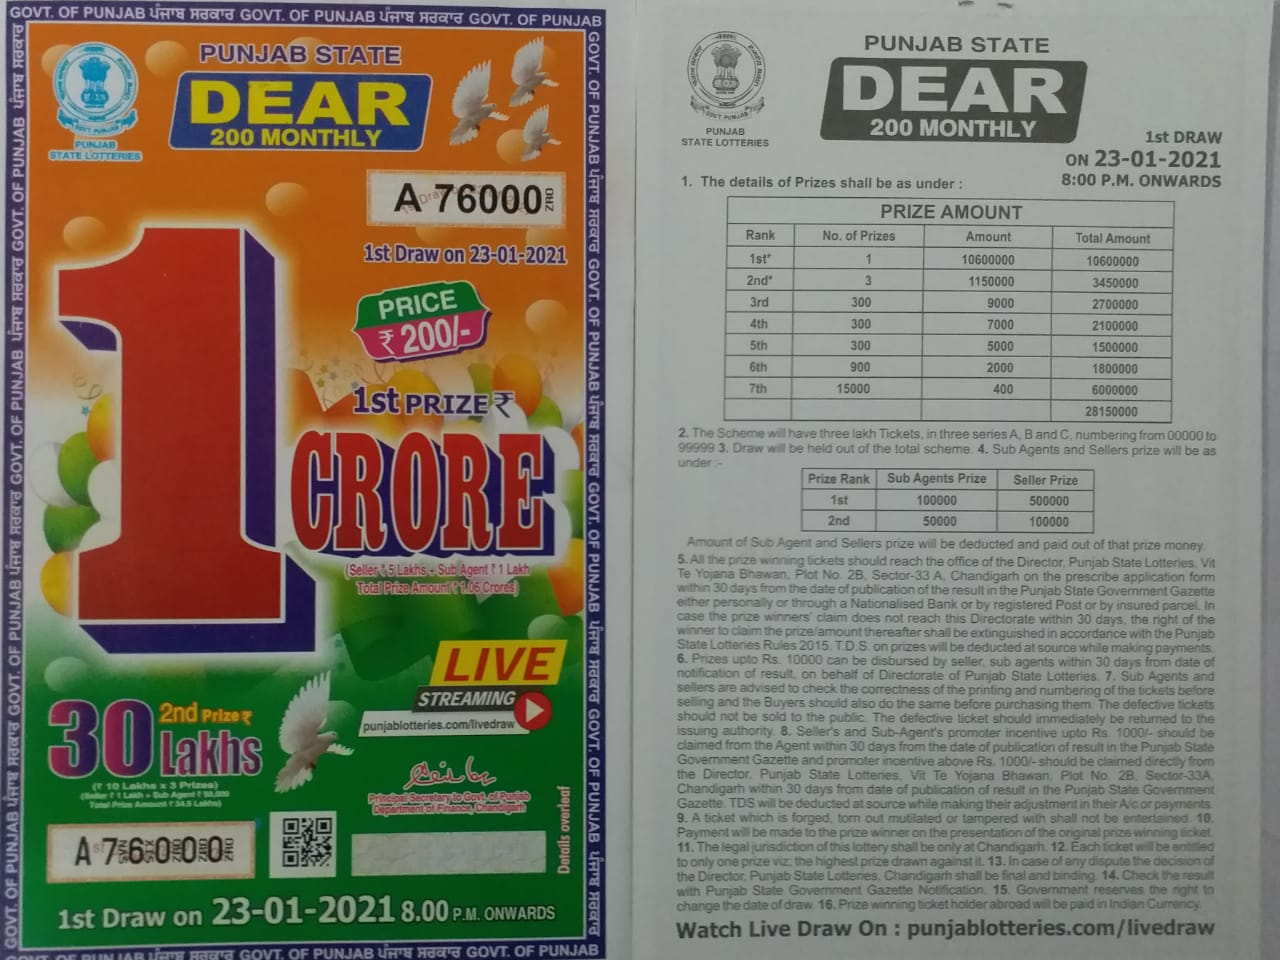 punjab-state-dear-200-monthly-23.01.2021